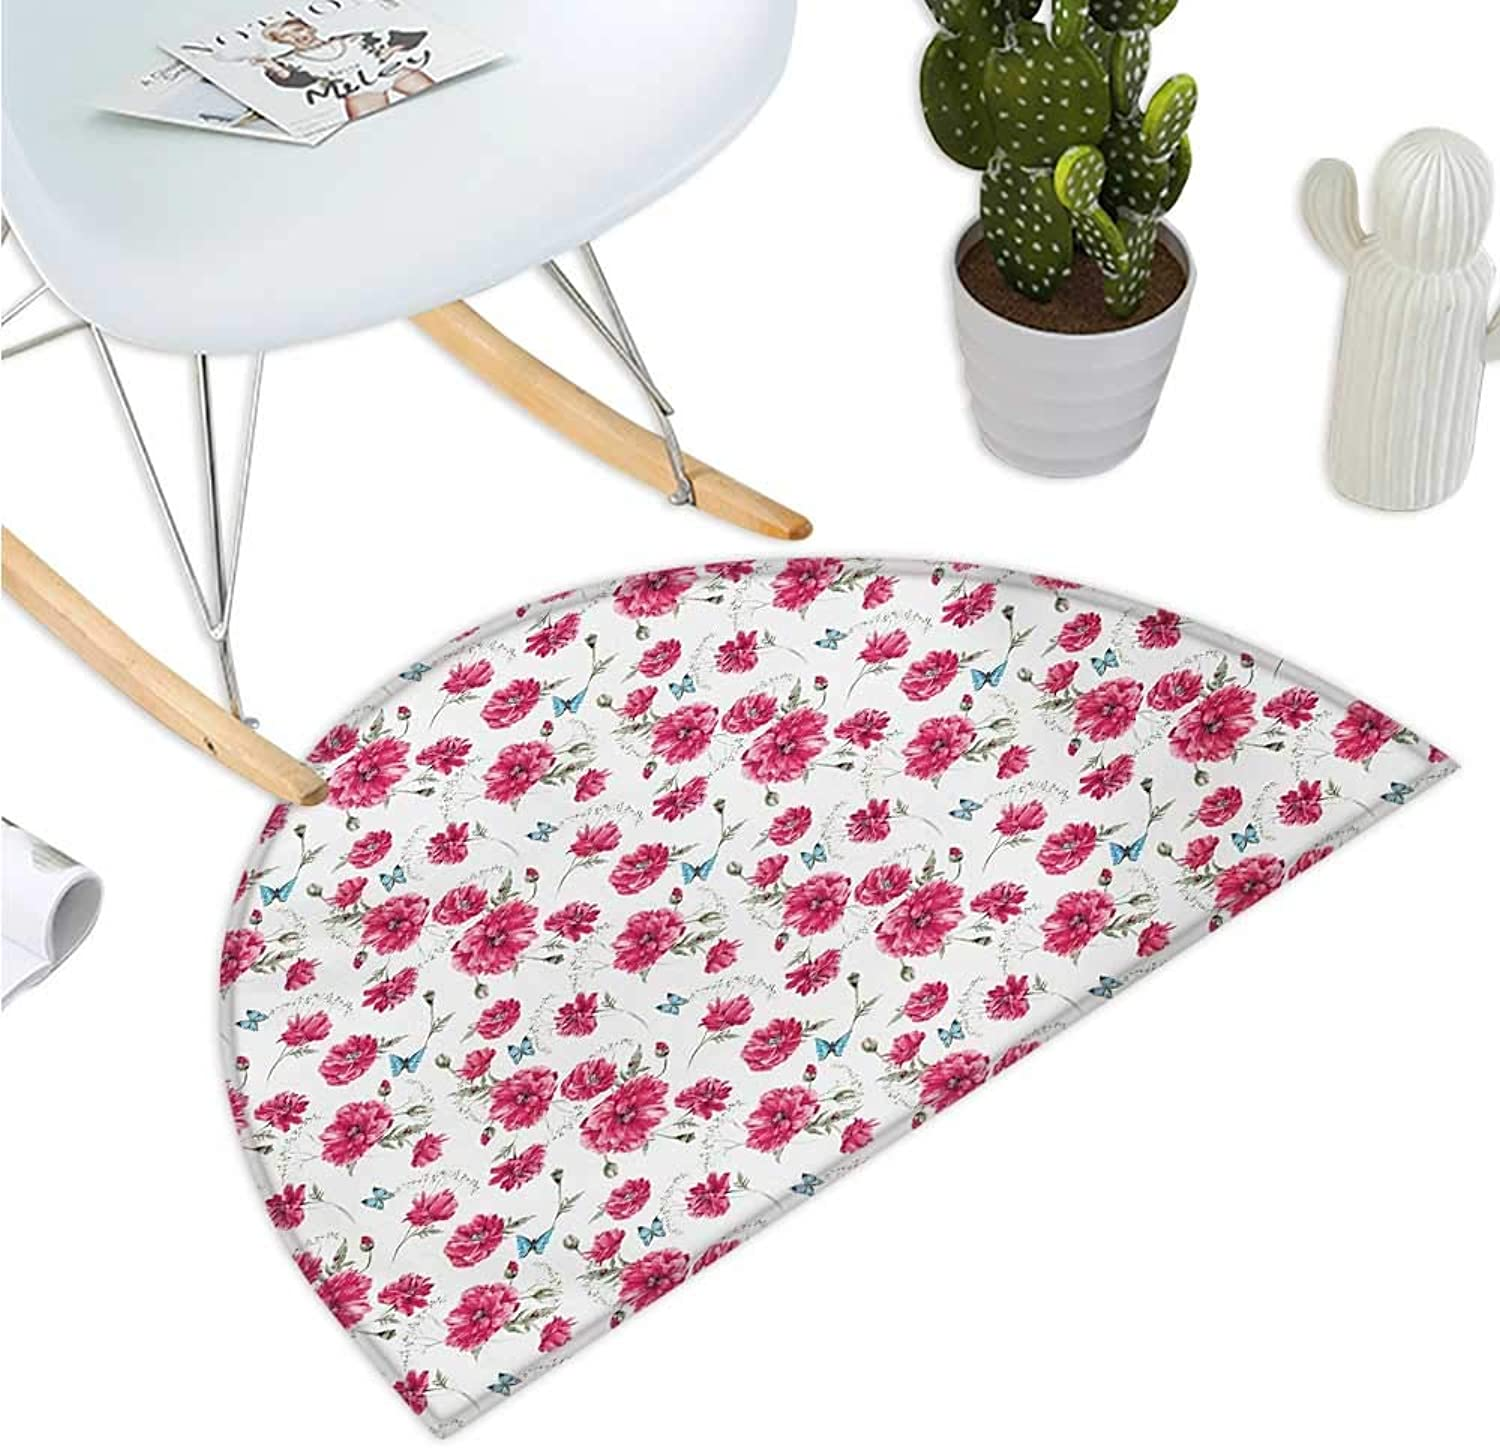 Butterfly Half Round Door mats Mothers Day Spring Themed Blossoming Nature Image Poppy Flowers Print Bathroom Mat H 35.4  xD 53.1  Pink Reseda Green bluee